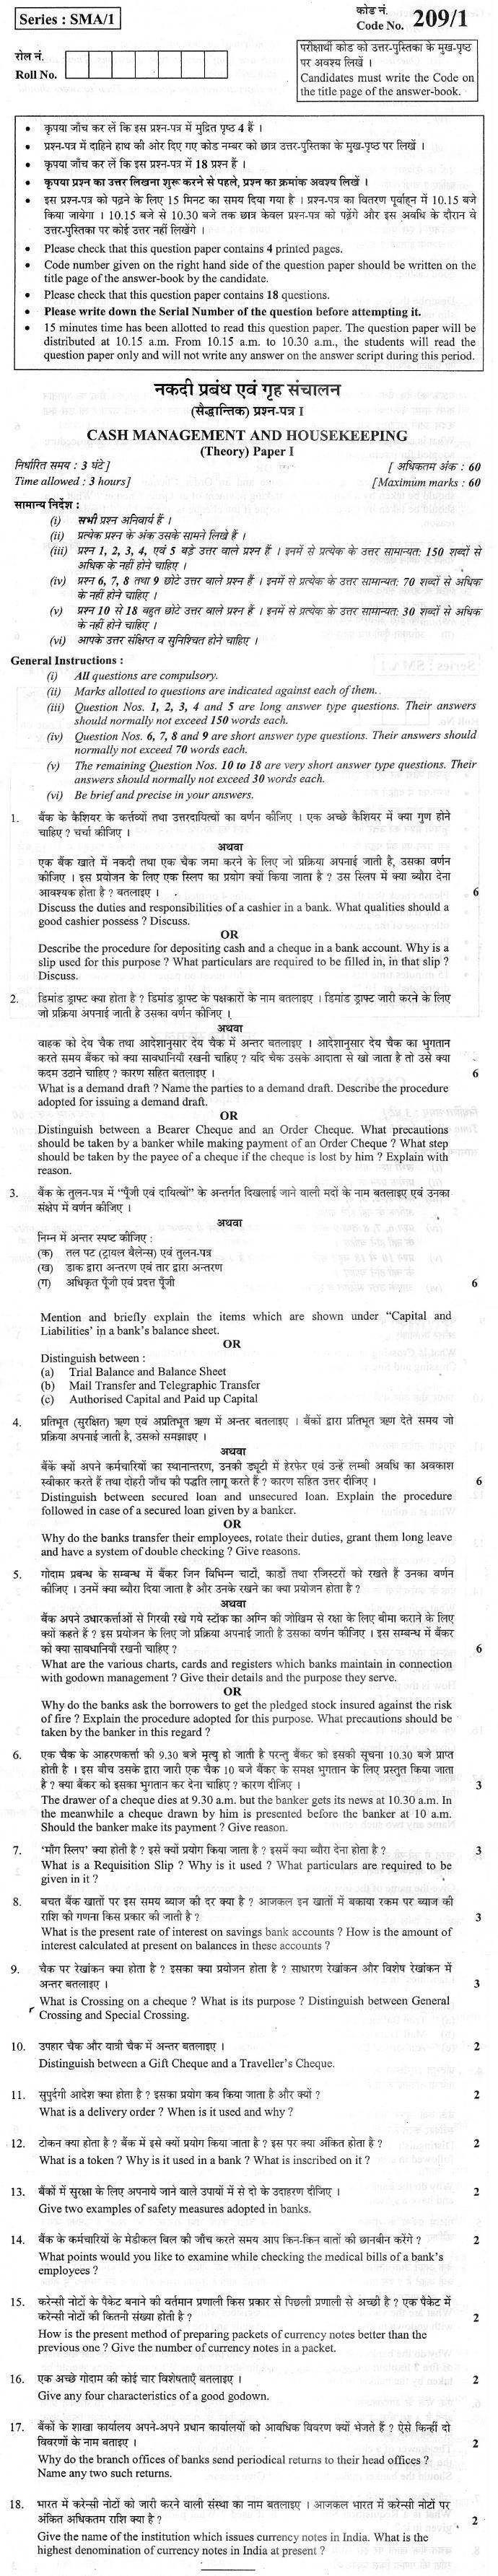 CBSE Class XII Previous Year Question Paper 2012 Cash Management and Housekeeping